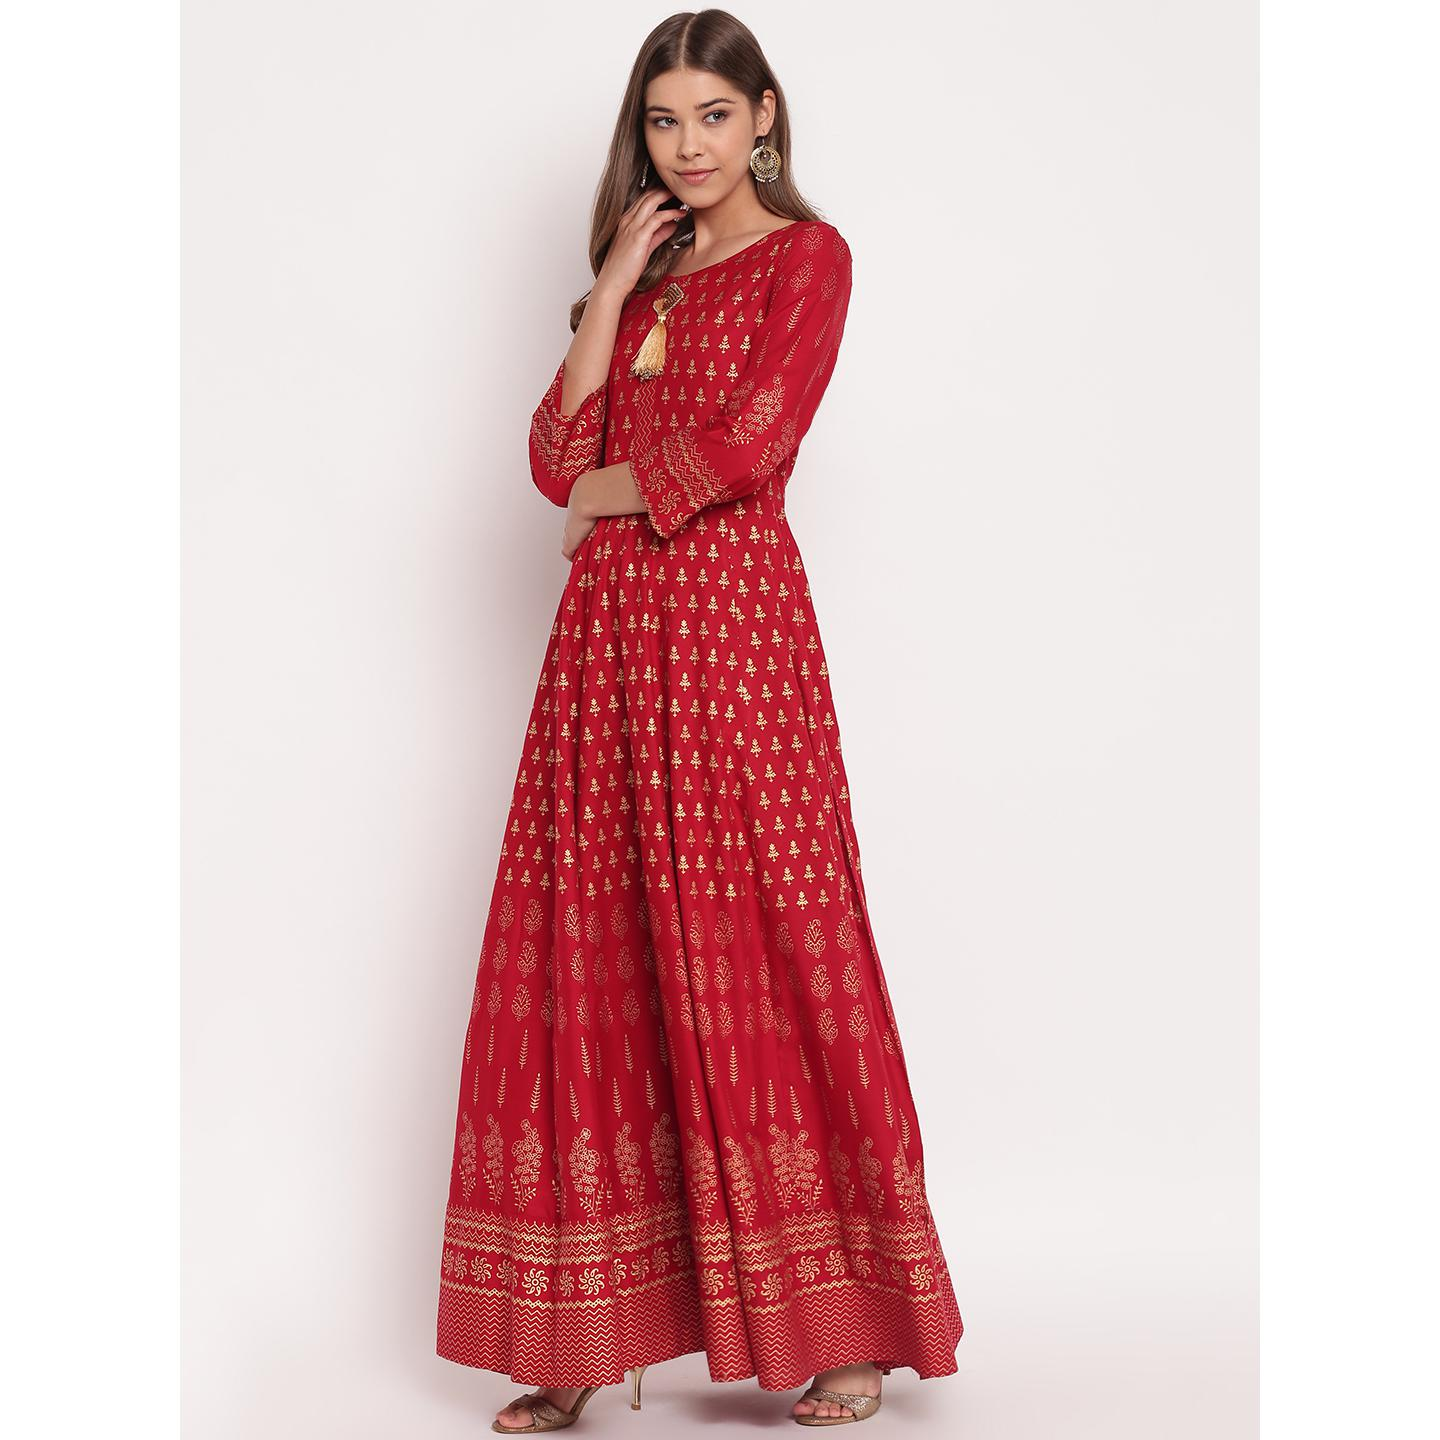 Opulent Maroon Colored Party Wear Floral Print Long Rayon Kurti